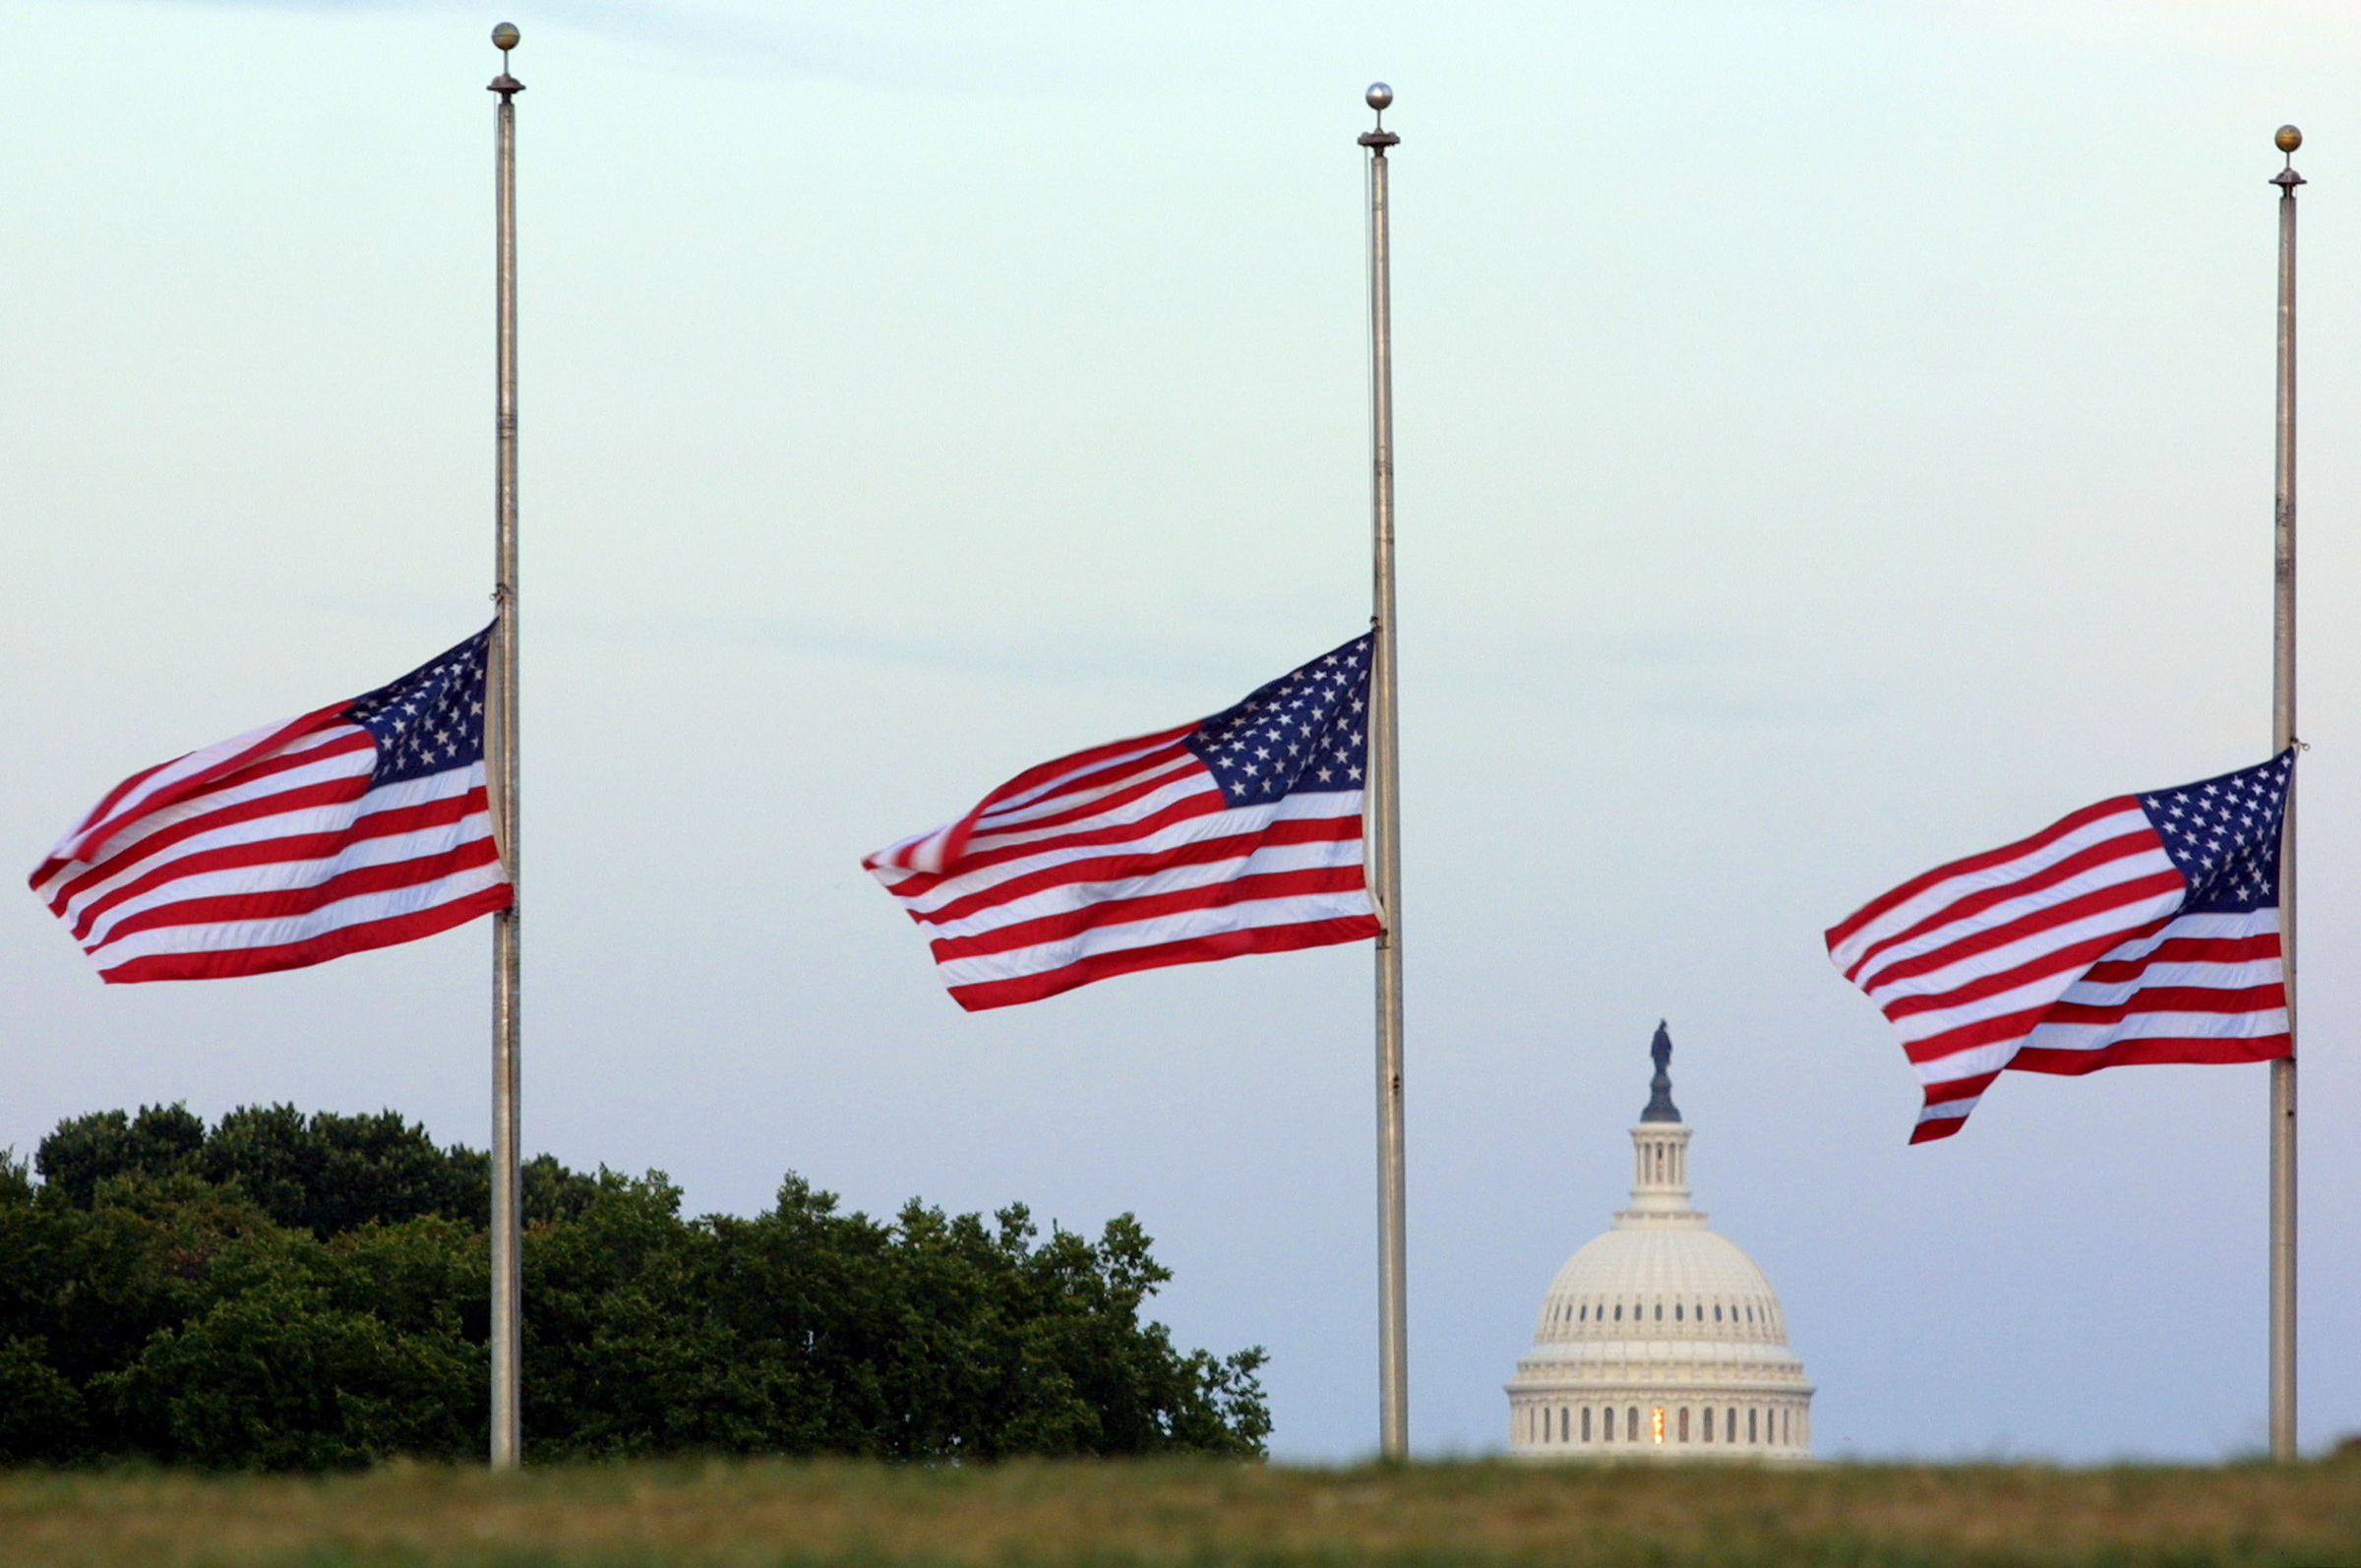 American flags fly at half mast on the grounds of the Washington Monument in memory of the victims of the terror attacks in New York City and at the Pentagon September 17, 2001 in Washington, DC.